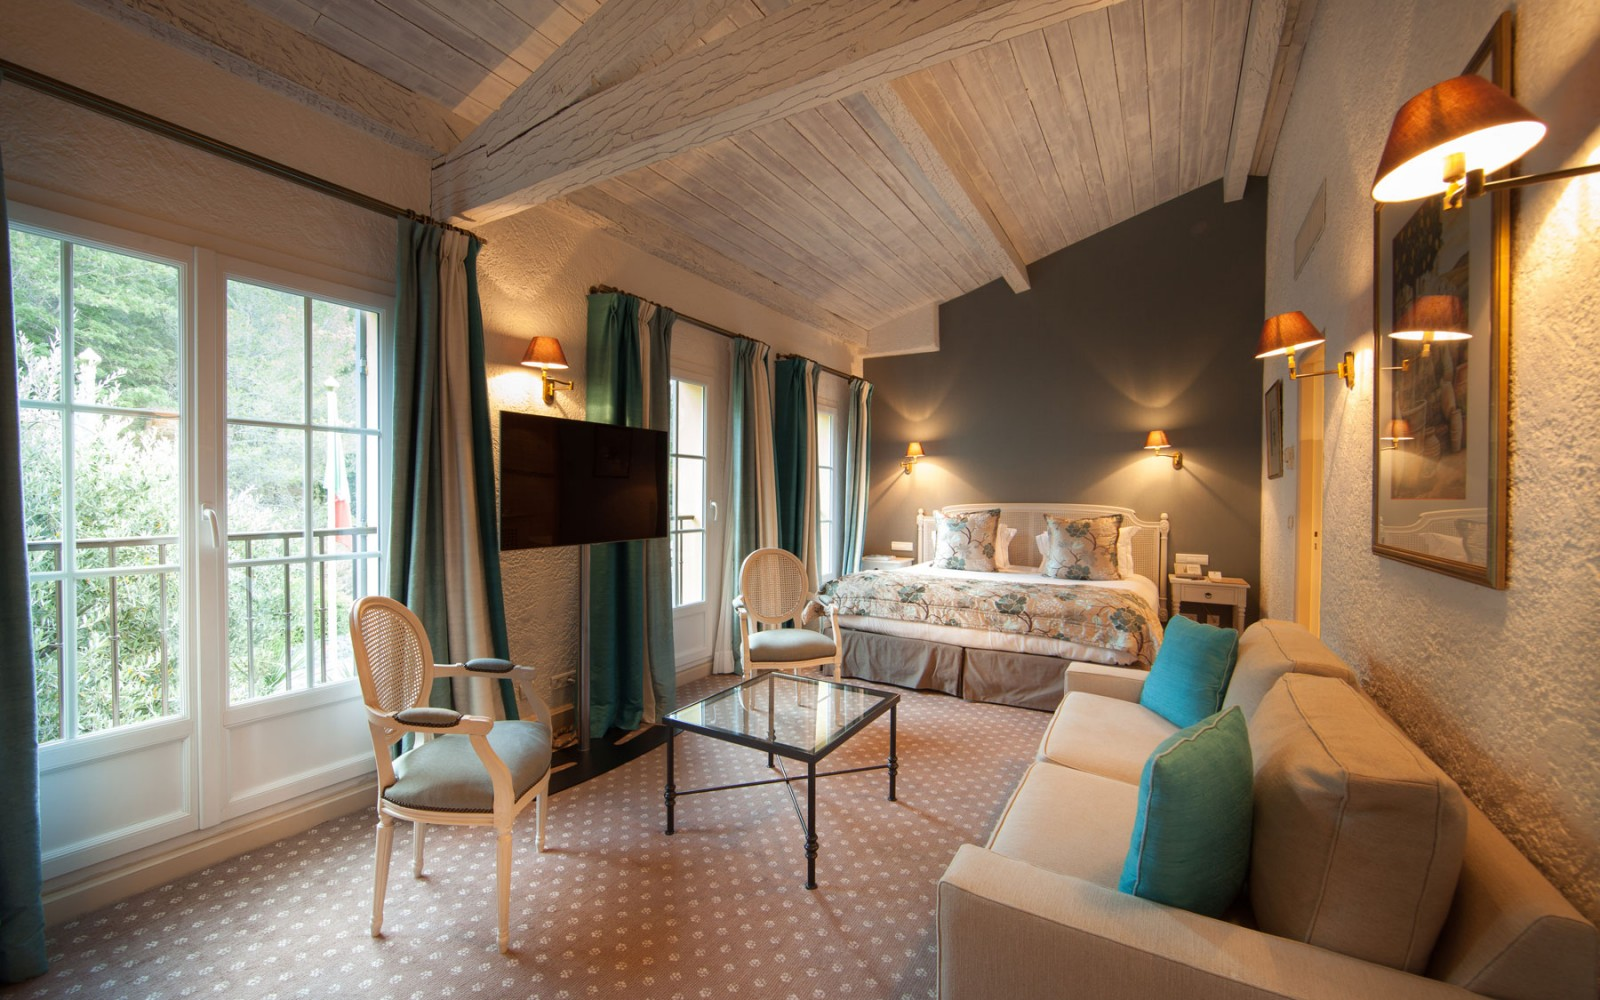 hotelbyblos-chambre-home-1